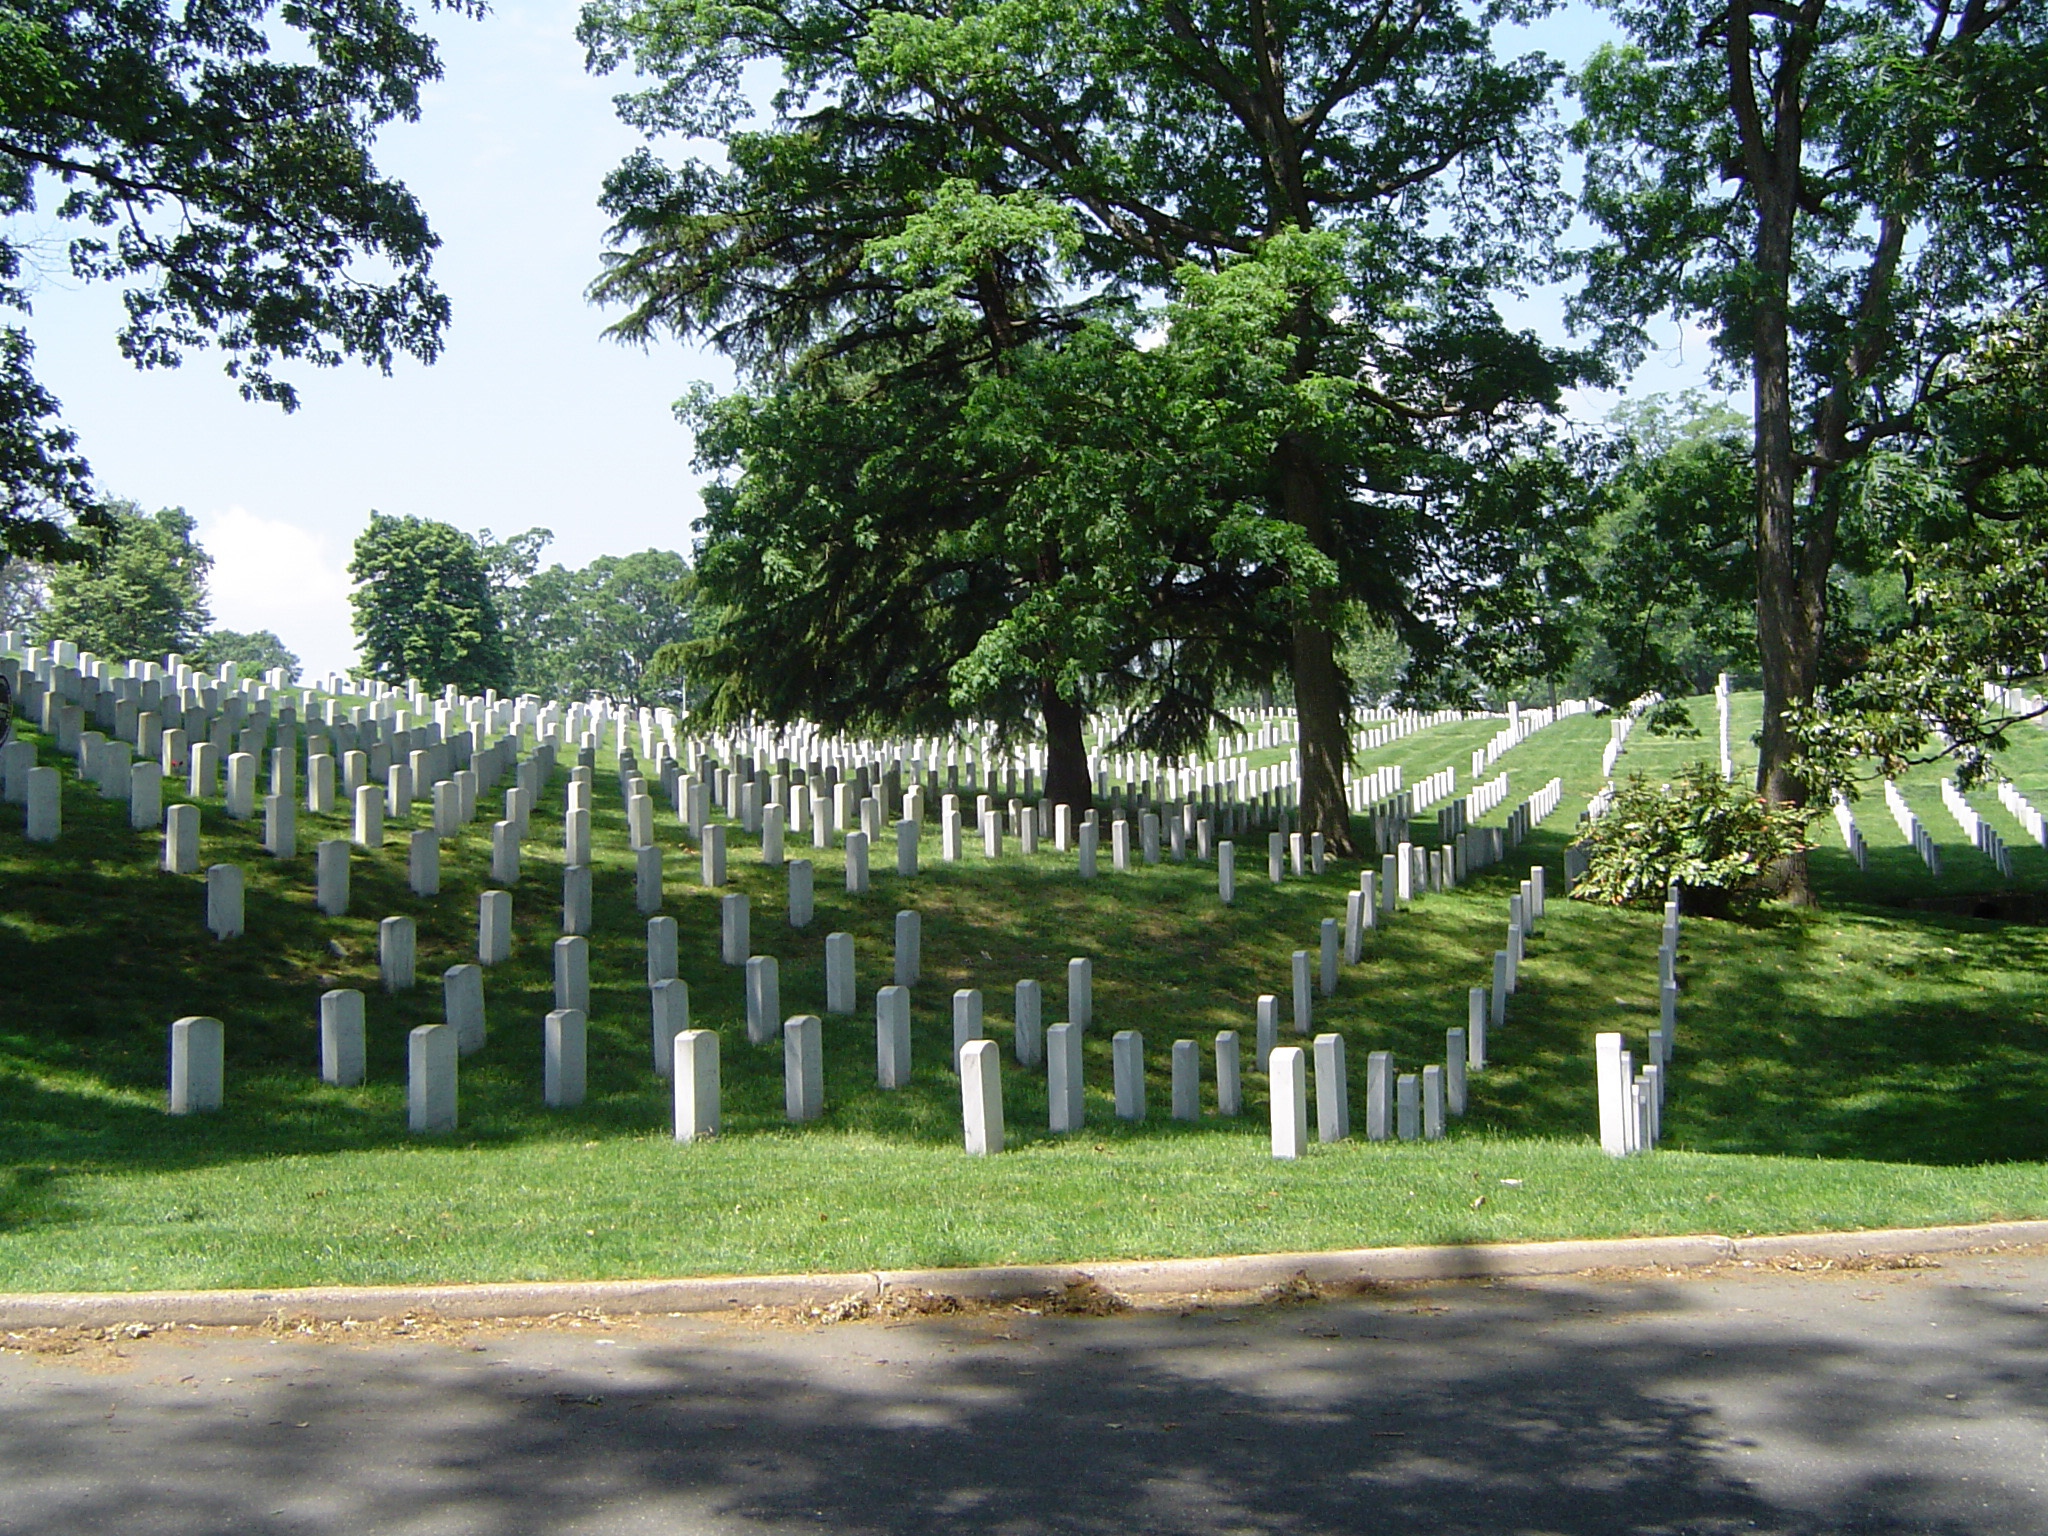 Graves at Grassy Arlington national Cemetery with Tall Green Trees. Isolated on Lighter Blue Sky Background.